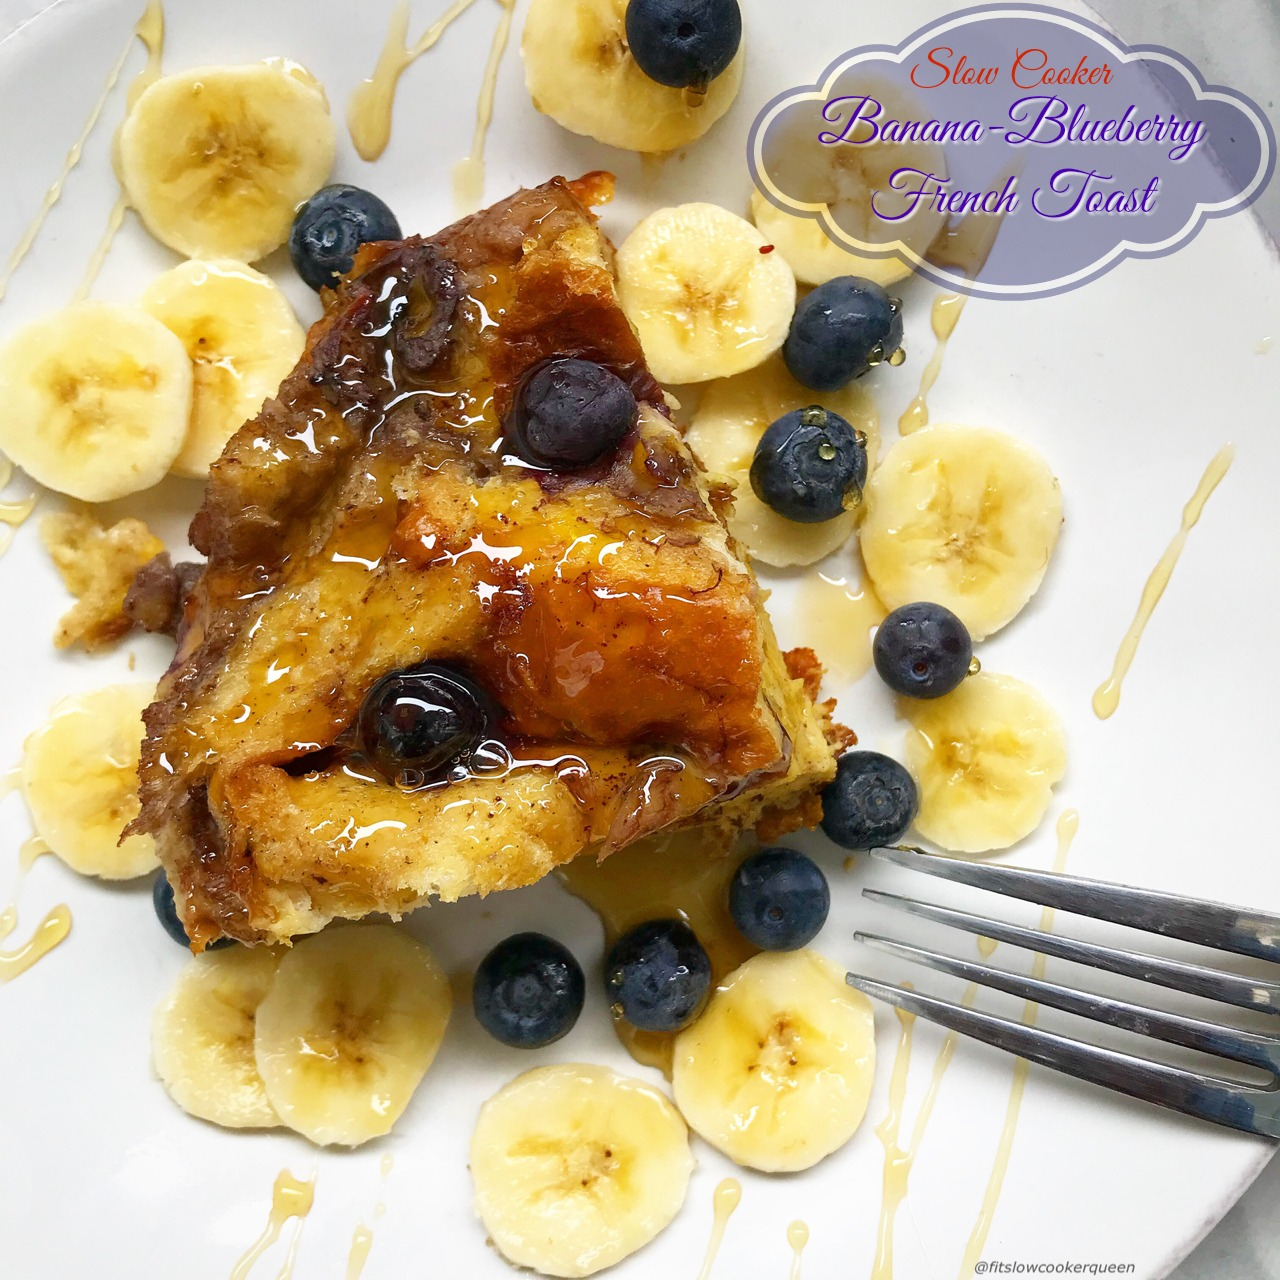 This French toast made with bananas and blueberries cooks overnight in the slow cooker. Wake up to an aromatic kitchen and fluffy breakfast meal that's sure to impress.